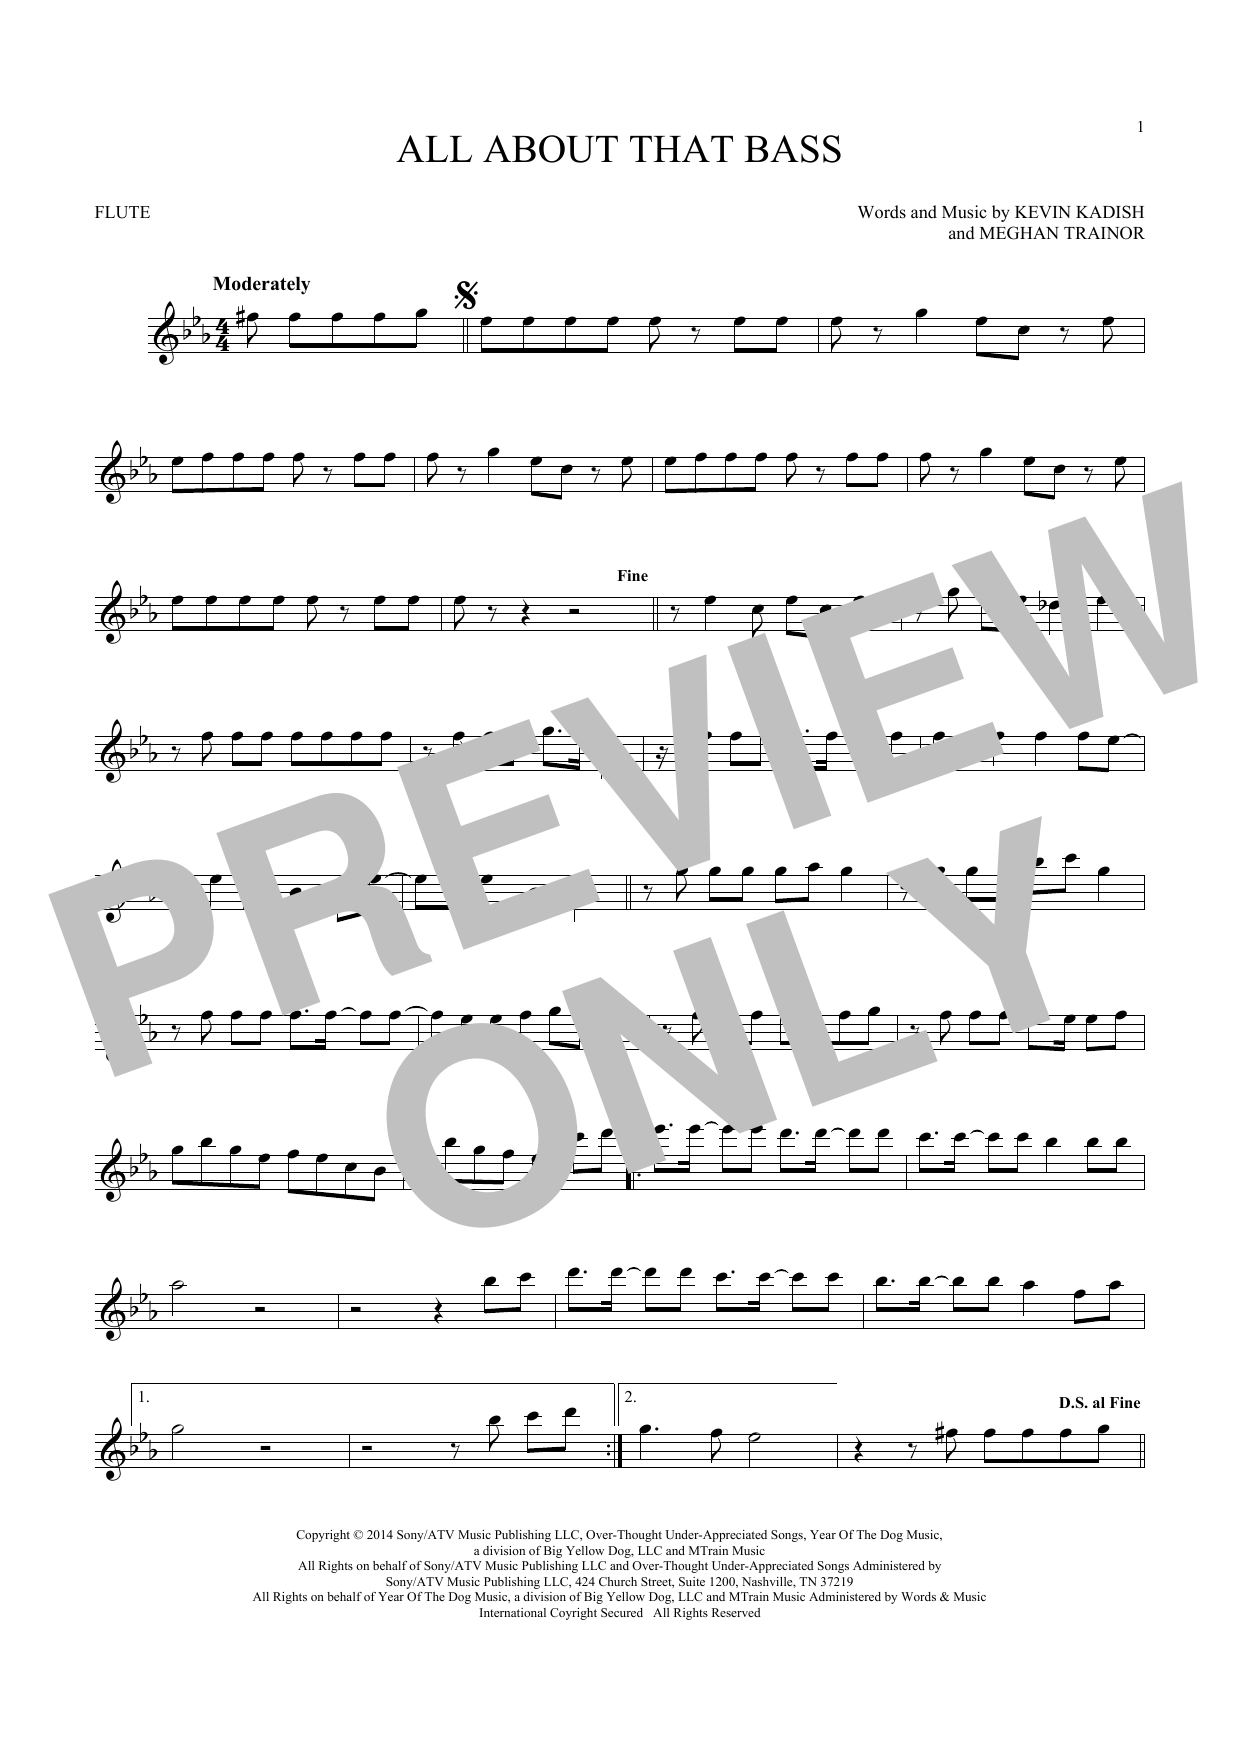 All About That Bass (Flute Solo)